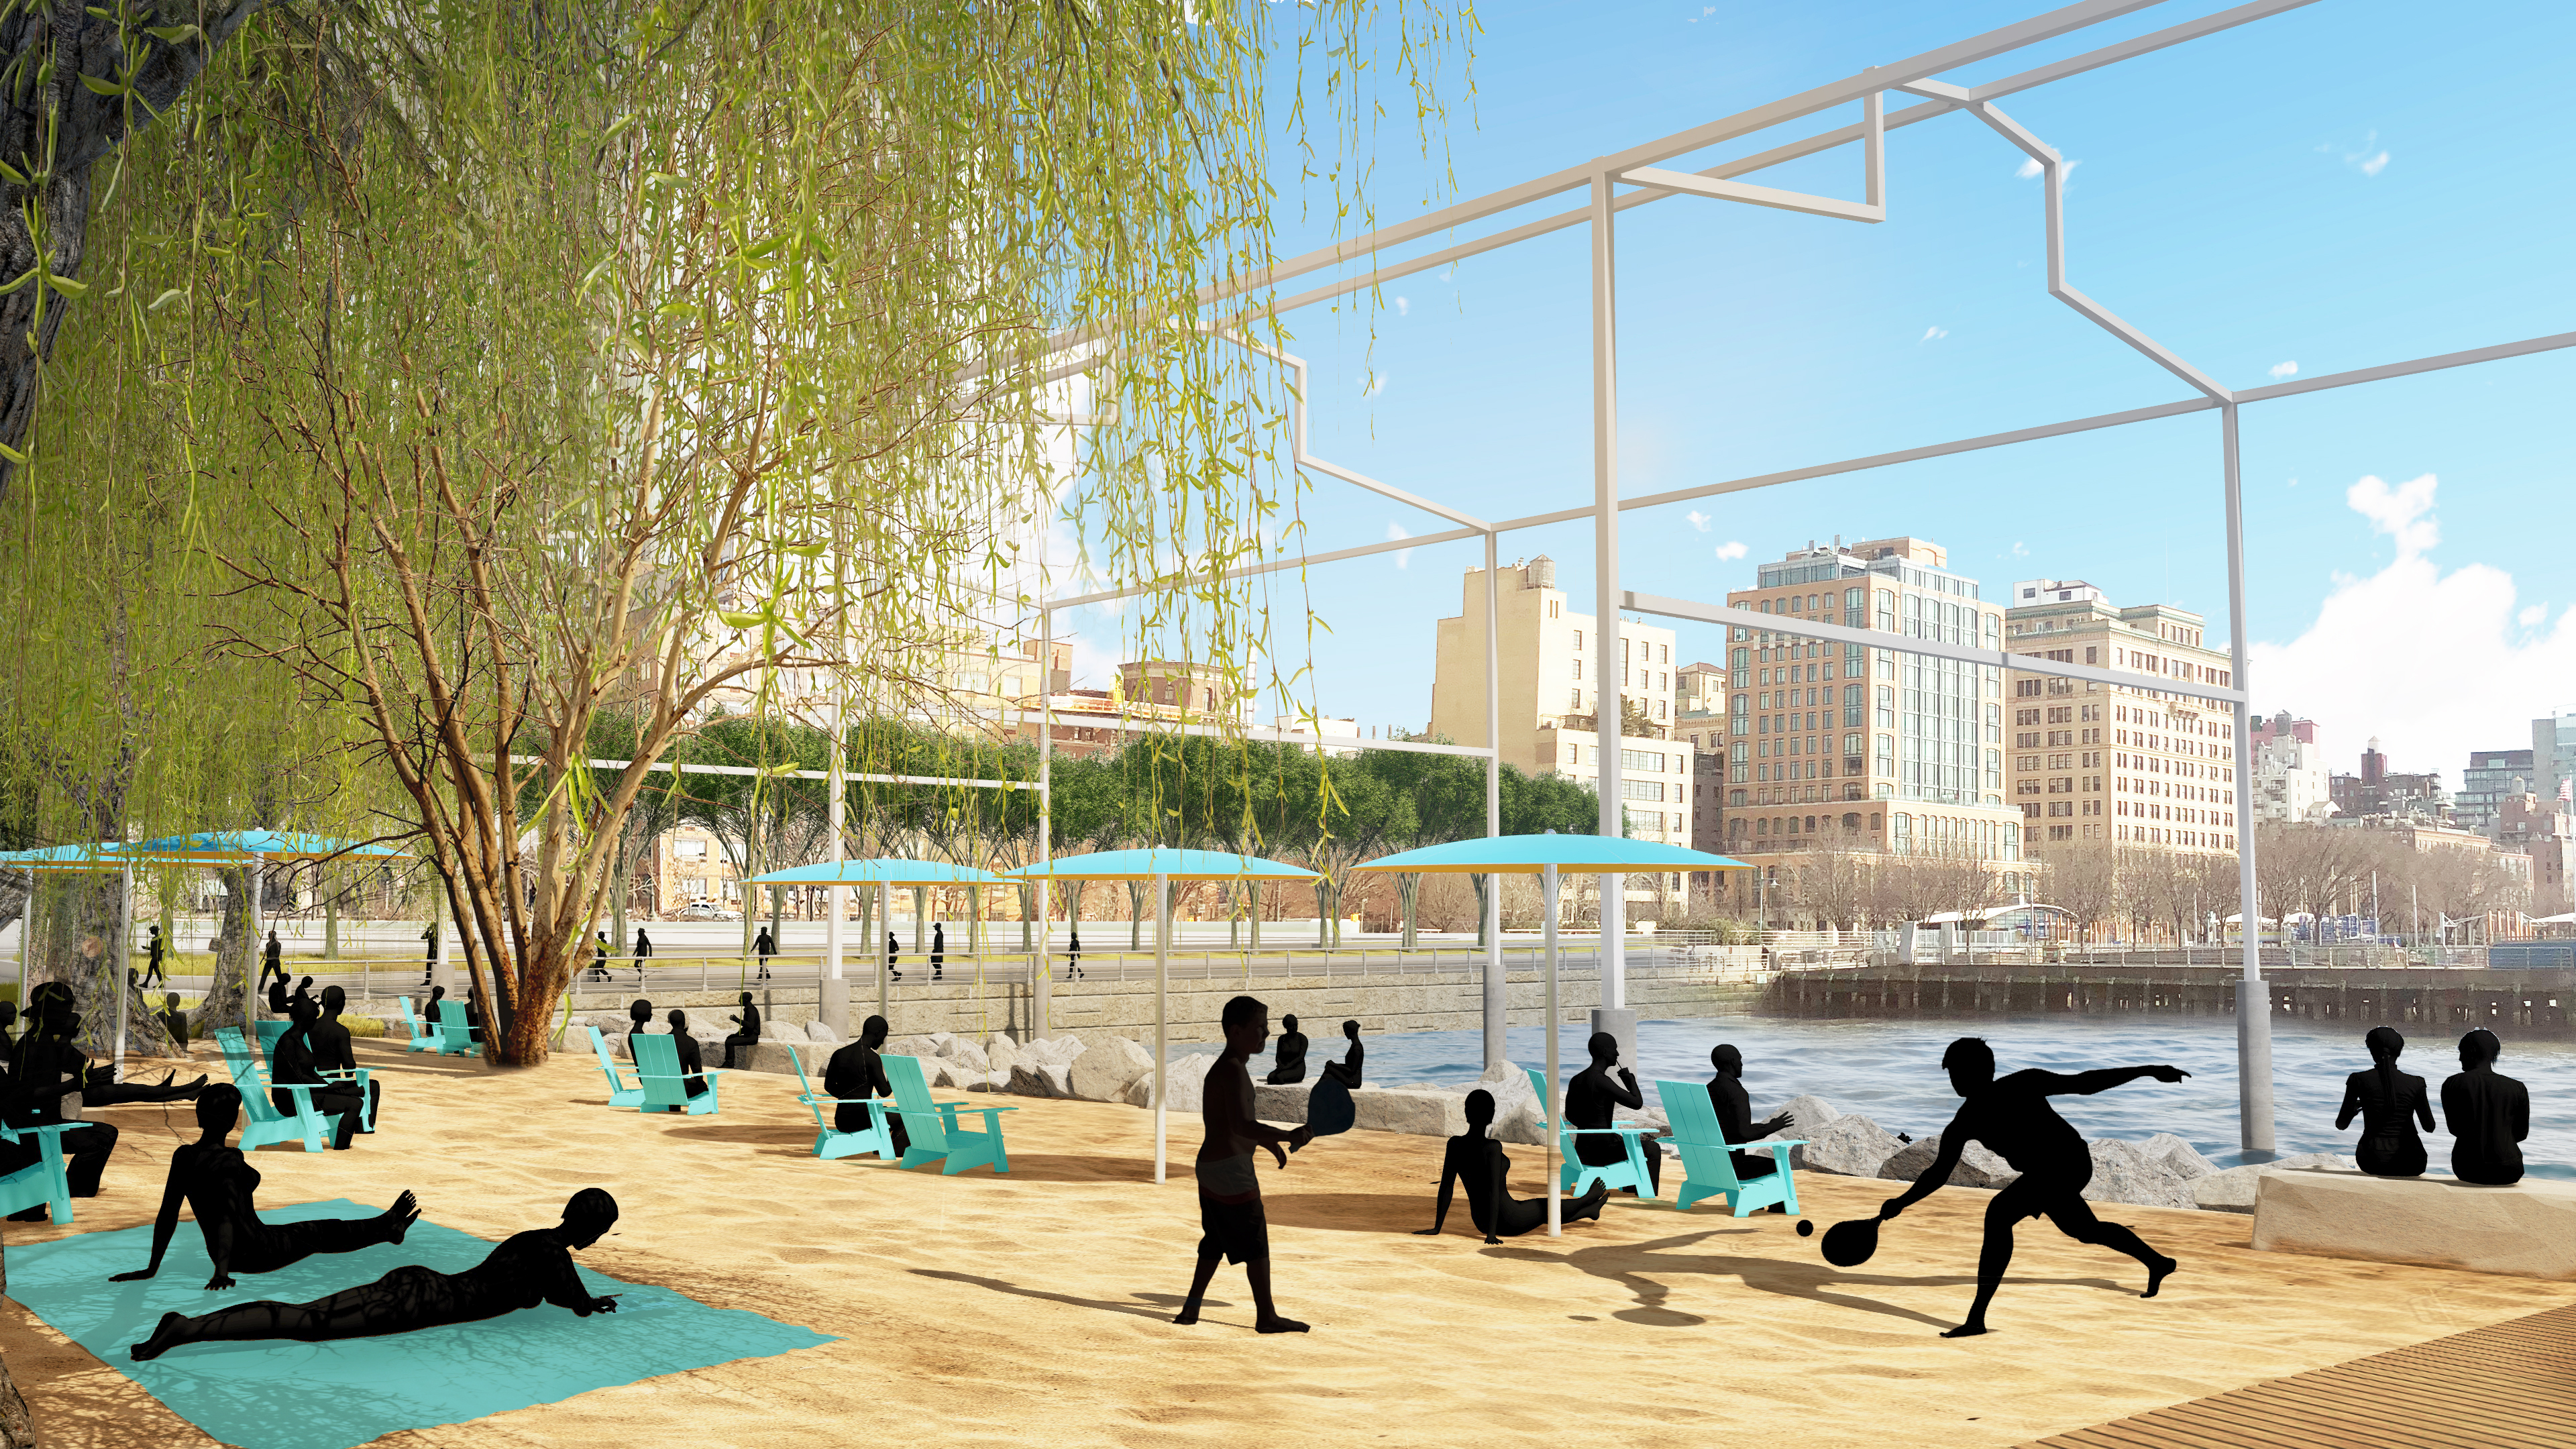 First look at Gansevoort Peninsula Park along the Hudson River